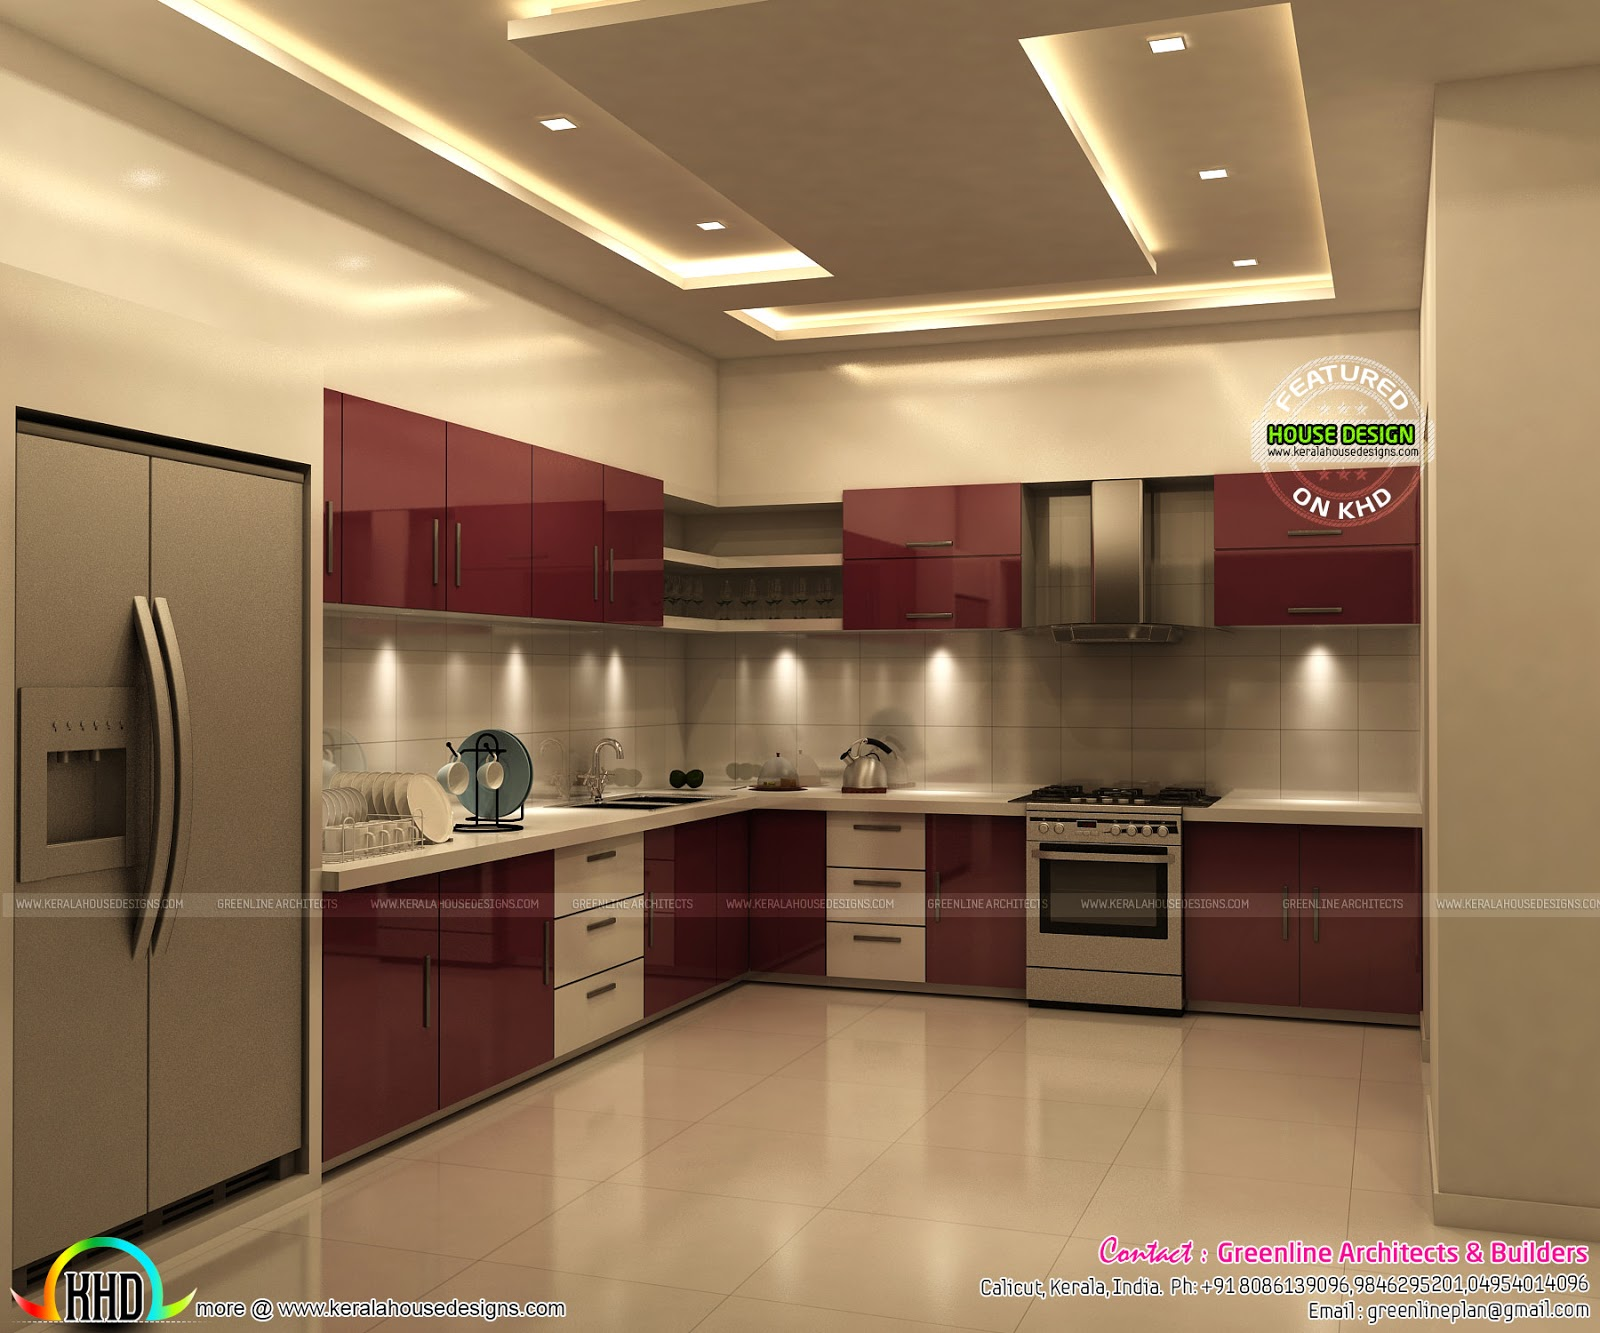 Superb kitchen and bedroom interiors kerala home design for Home design kitchen decor